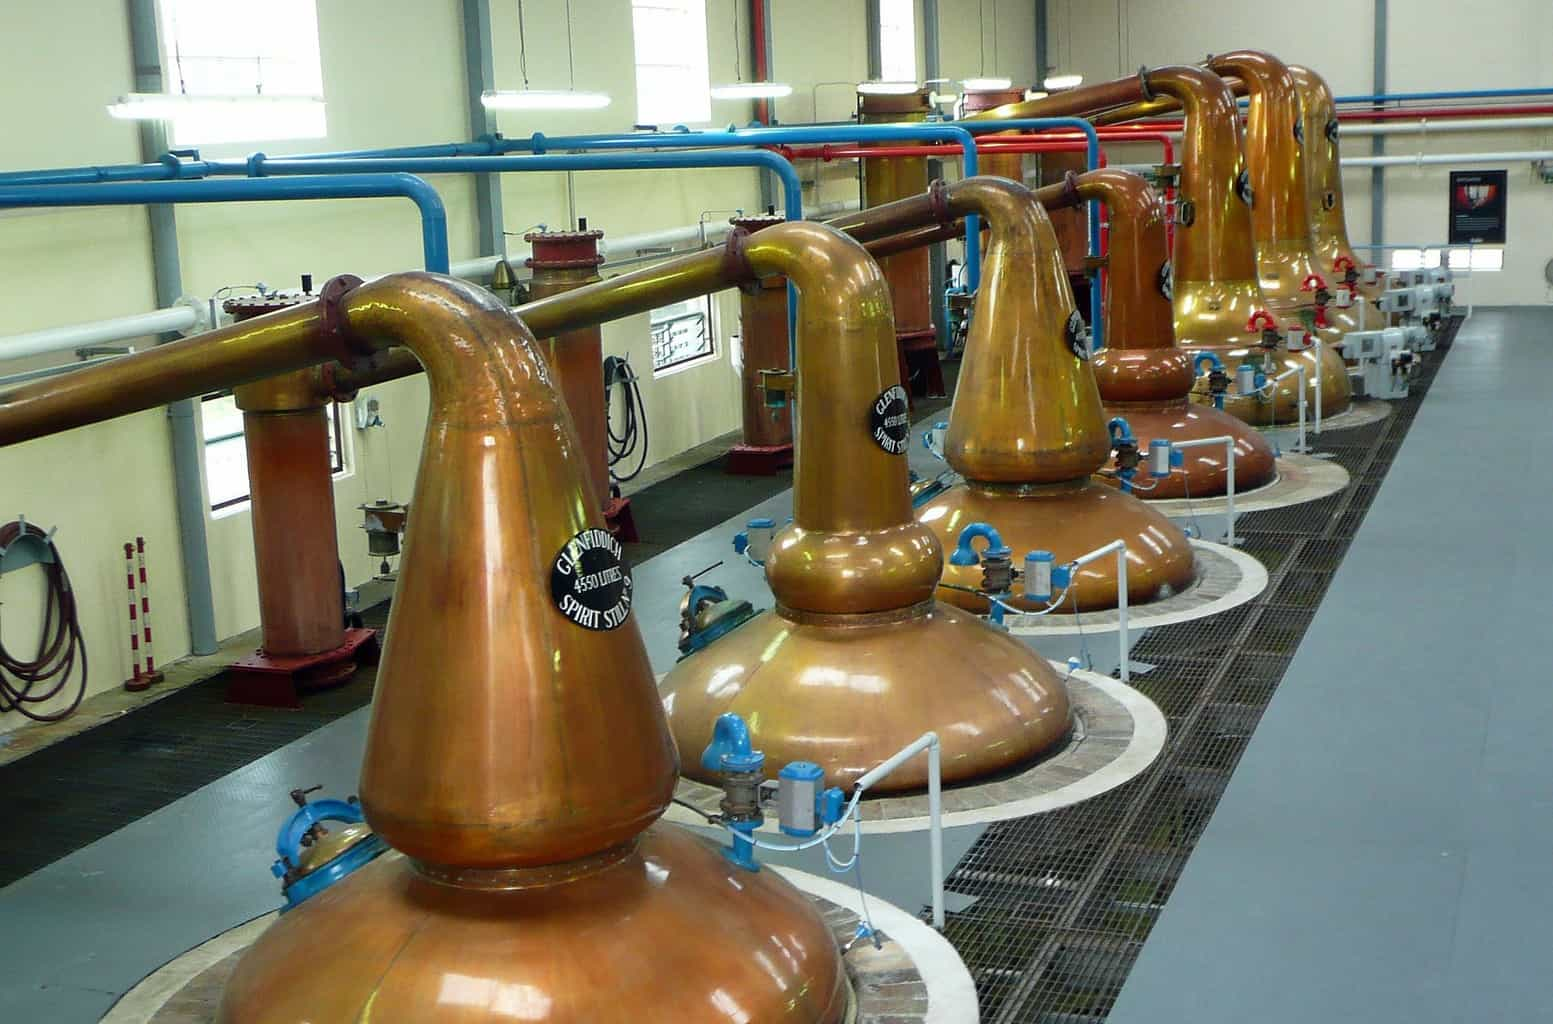 A distillery in Scotland